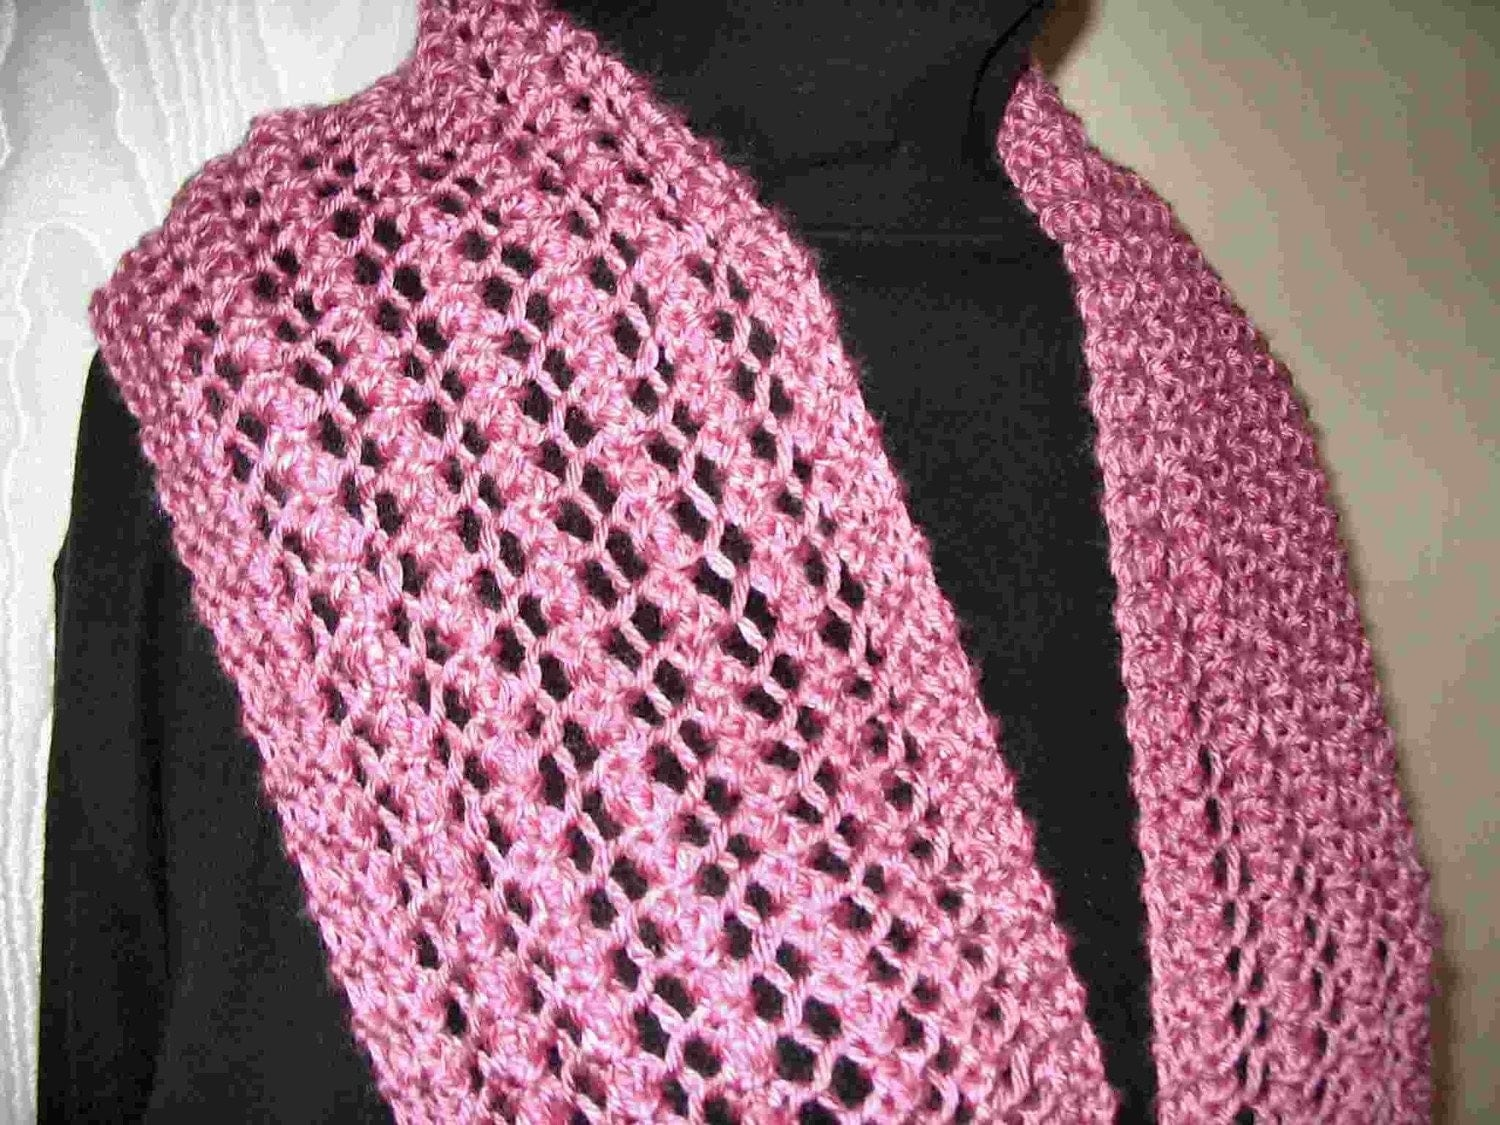 Beginner Knit Scarf Patterns : Knitted lace scarf Four patterns in One Easy to knit one row